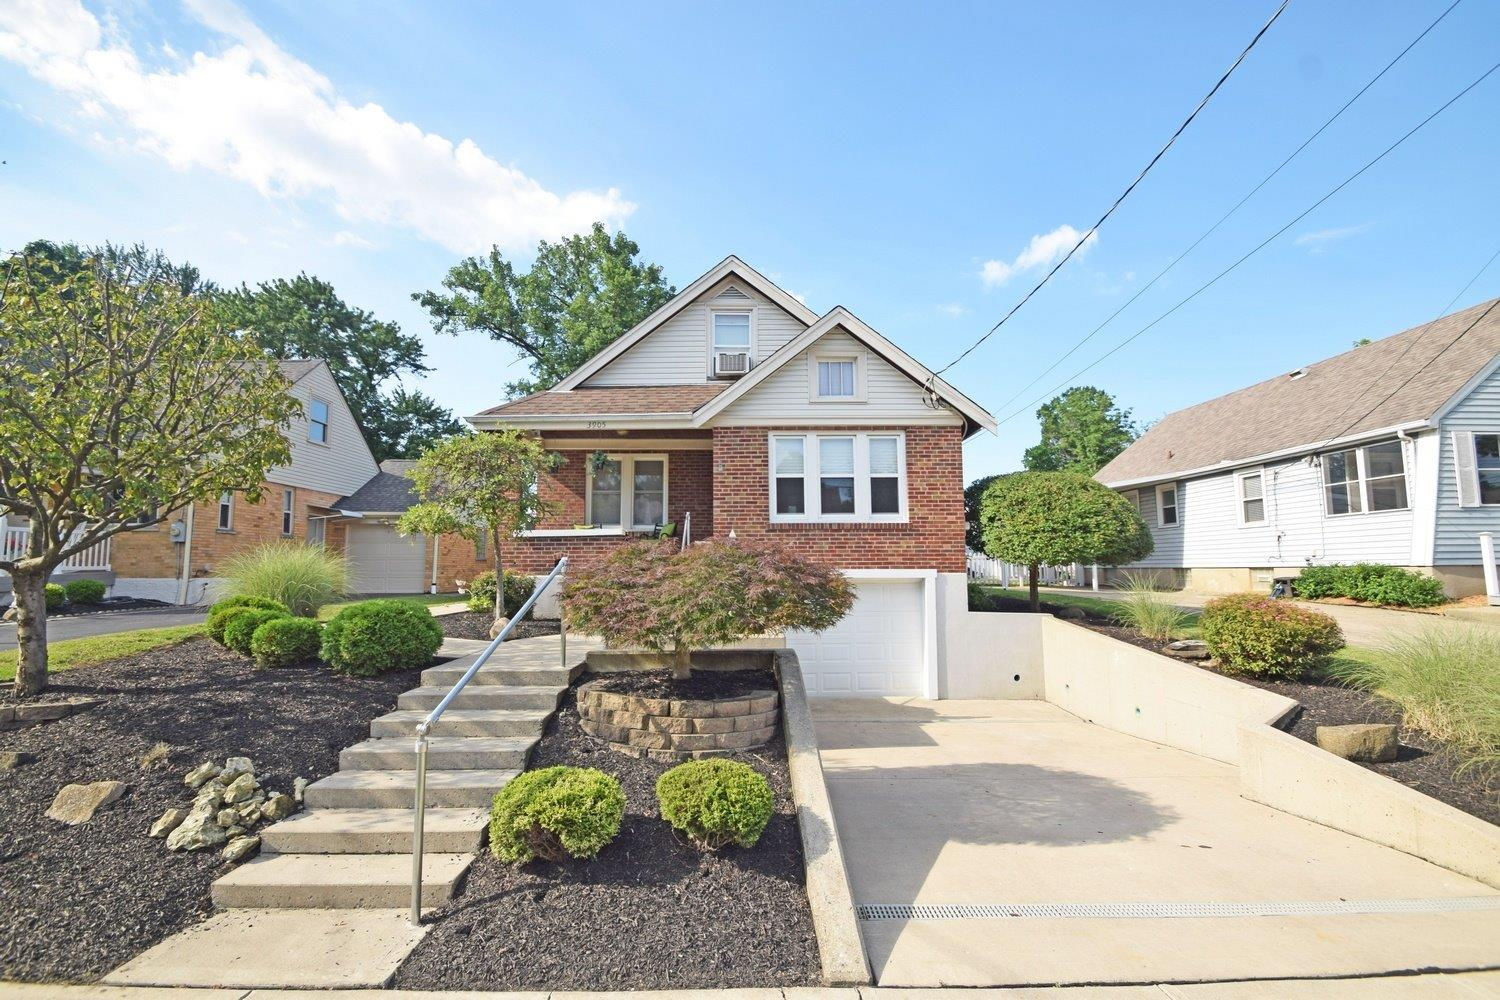 3905 OLeary Ave Deer Park, OH